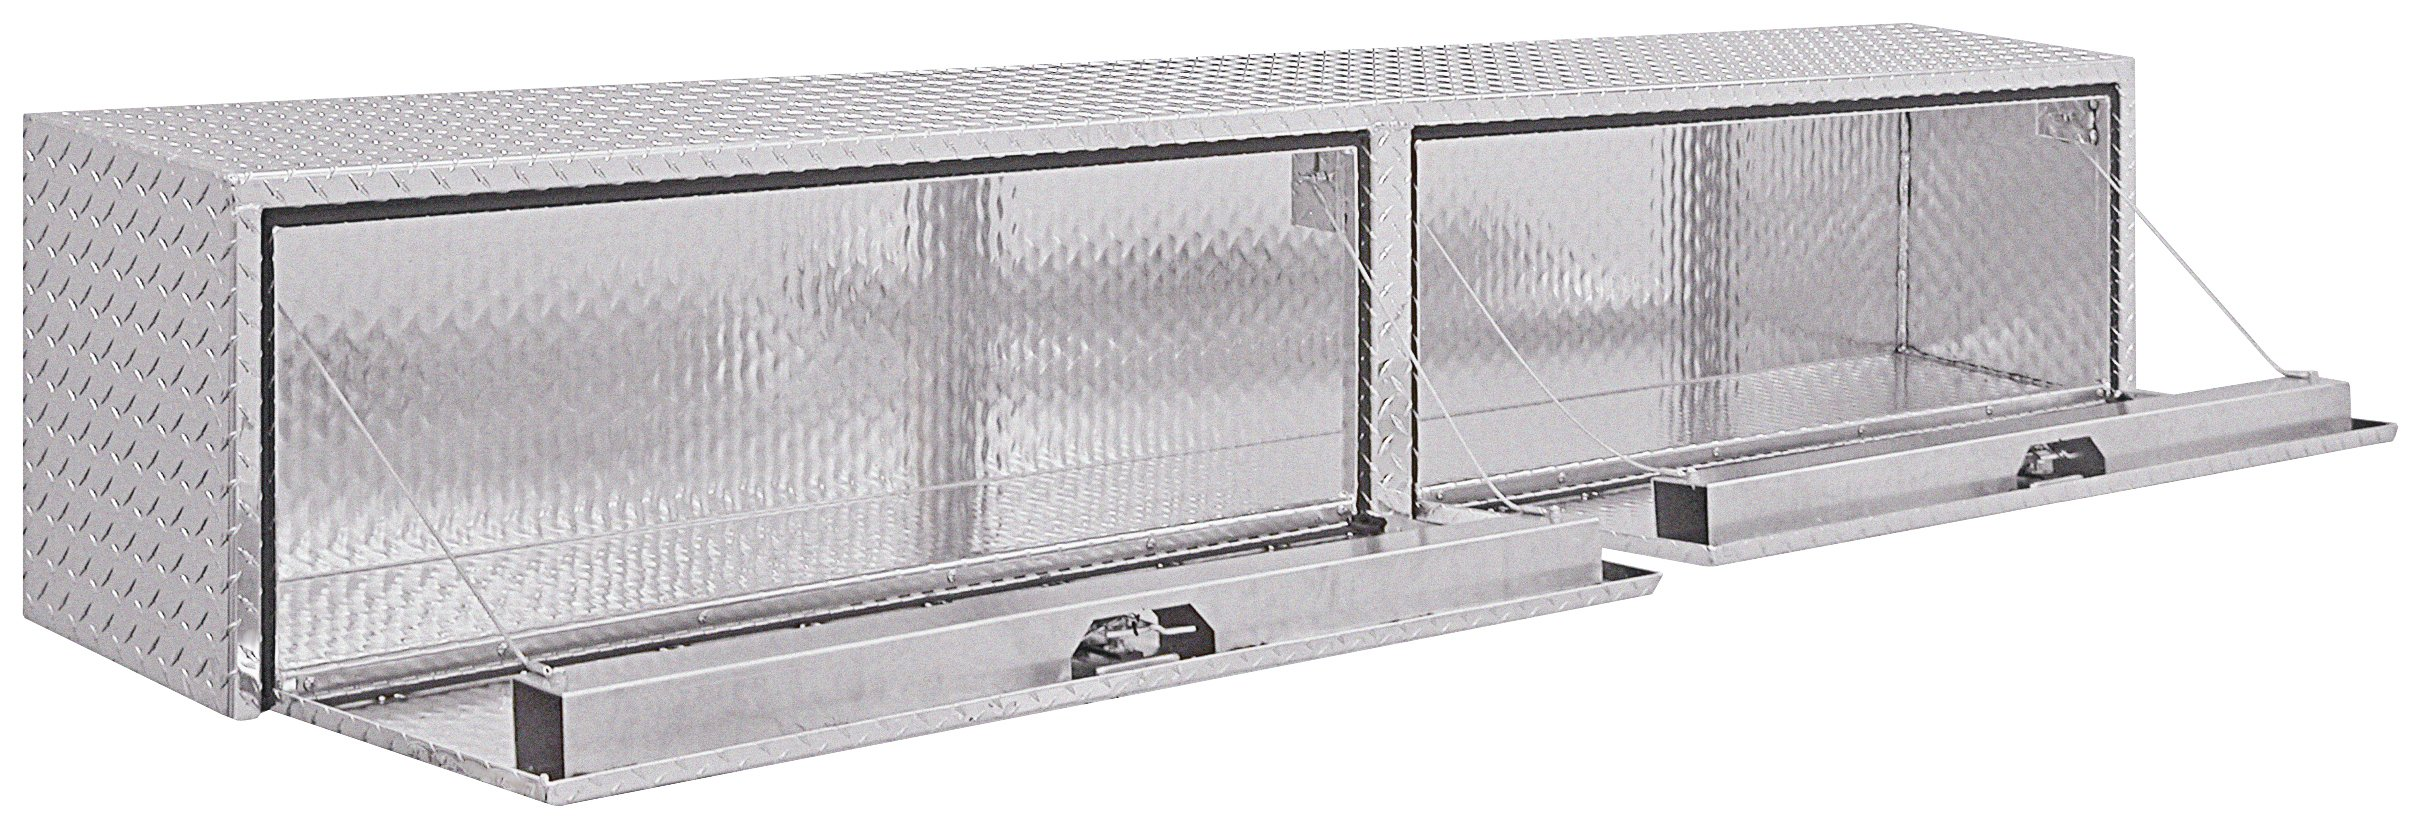 Buyers Products Diamond Tread Aluminum Topsider Truck Box w/ T-Handle Latch (16x13x72 Inch) by Buyers Products (Image #2)